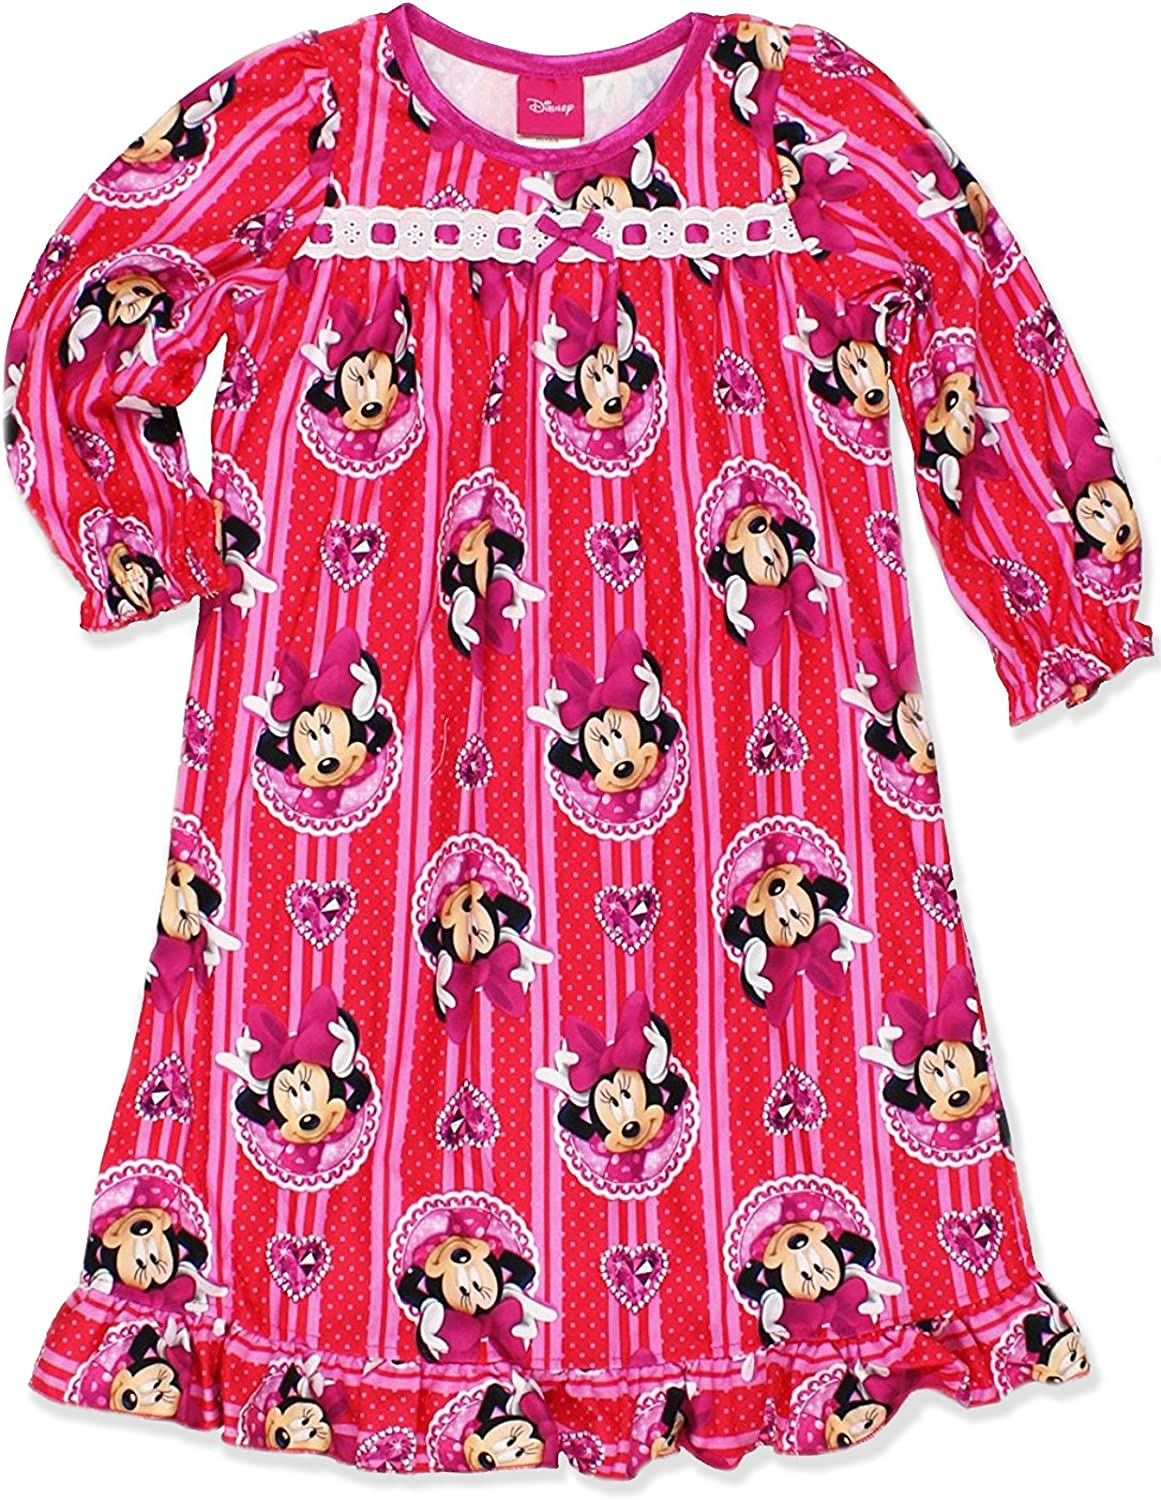 Disney Minnie Mouse Girls Flannel Granny Gown Nightgown (Toddler/Little Kid/Big Kid)